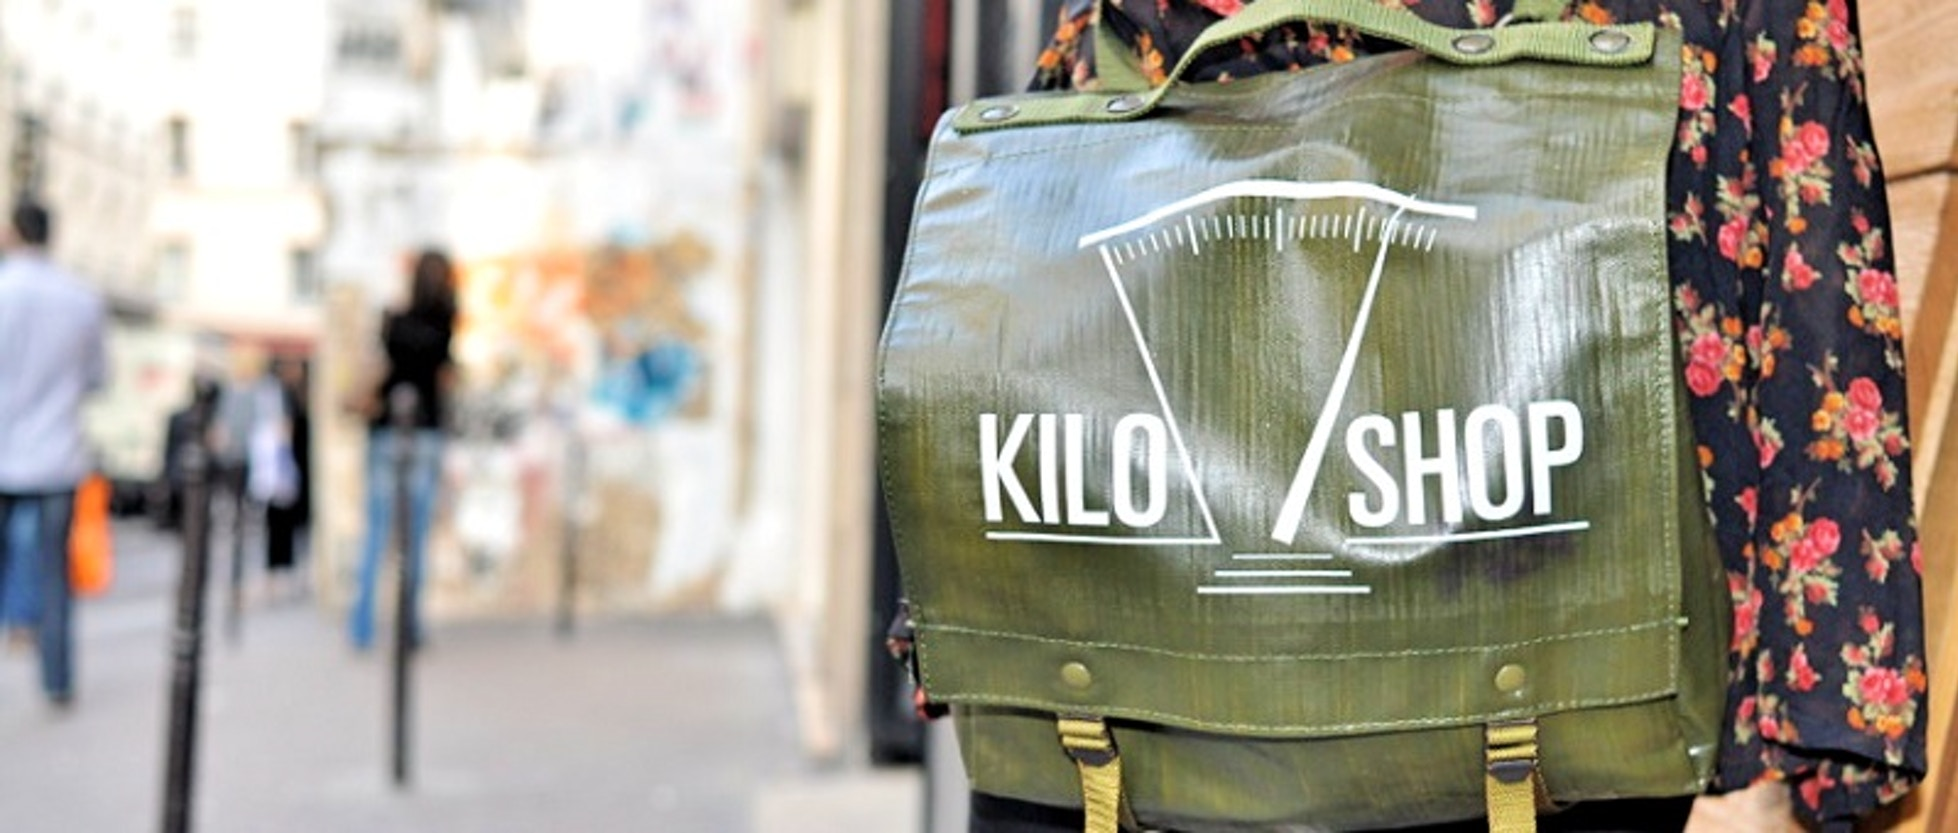 Kilo shop la catena di negozi vintage al chilo vivi parigi for Ferro al chilo